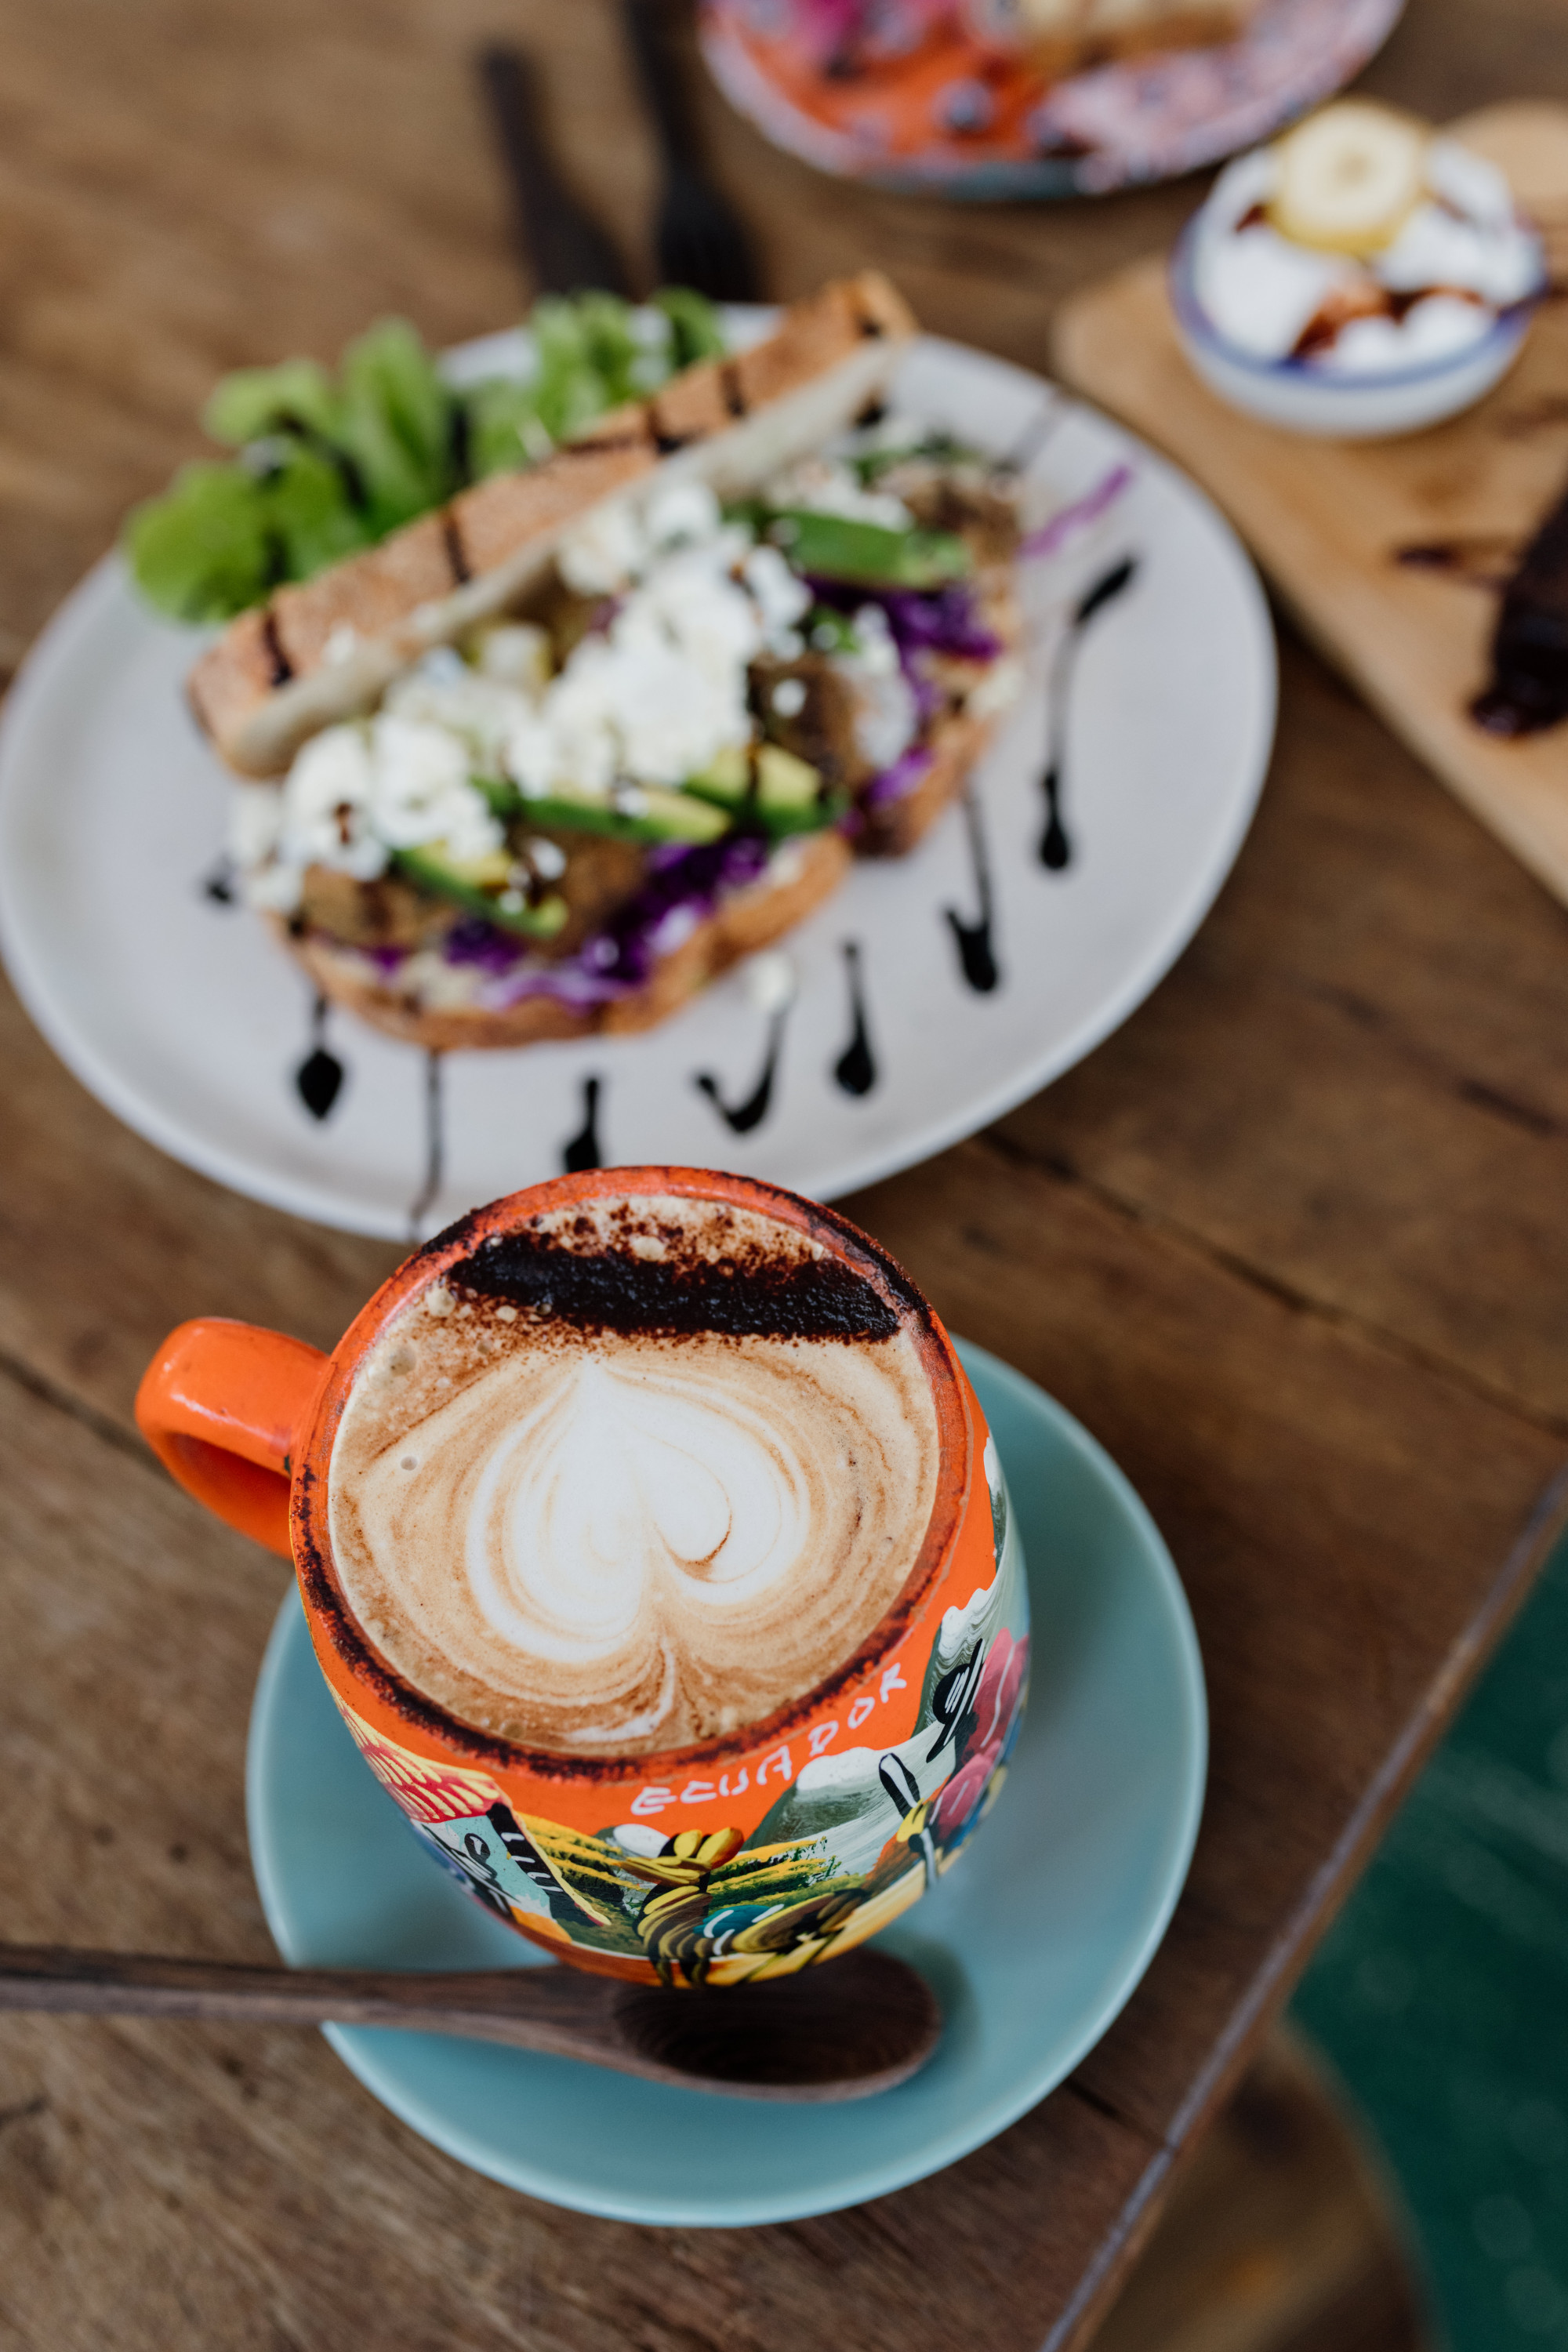 a coffee cup and a smashed avocado dish